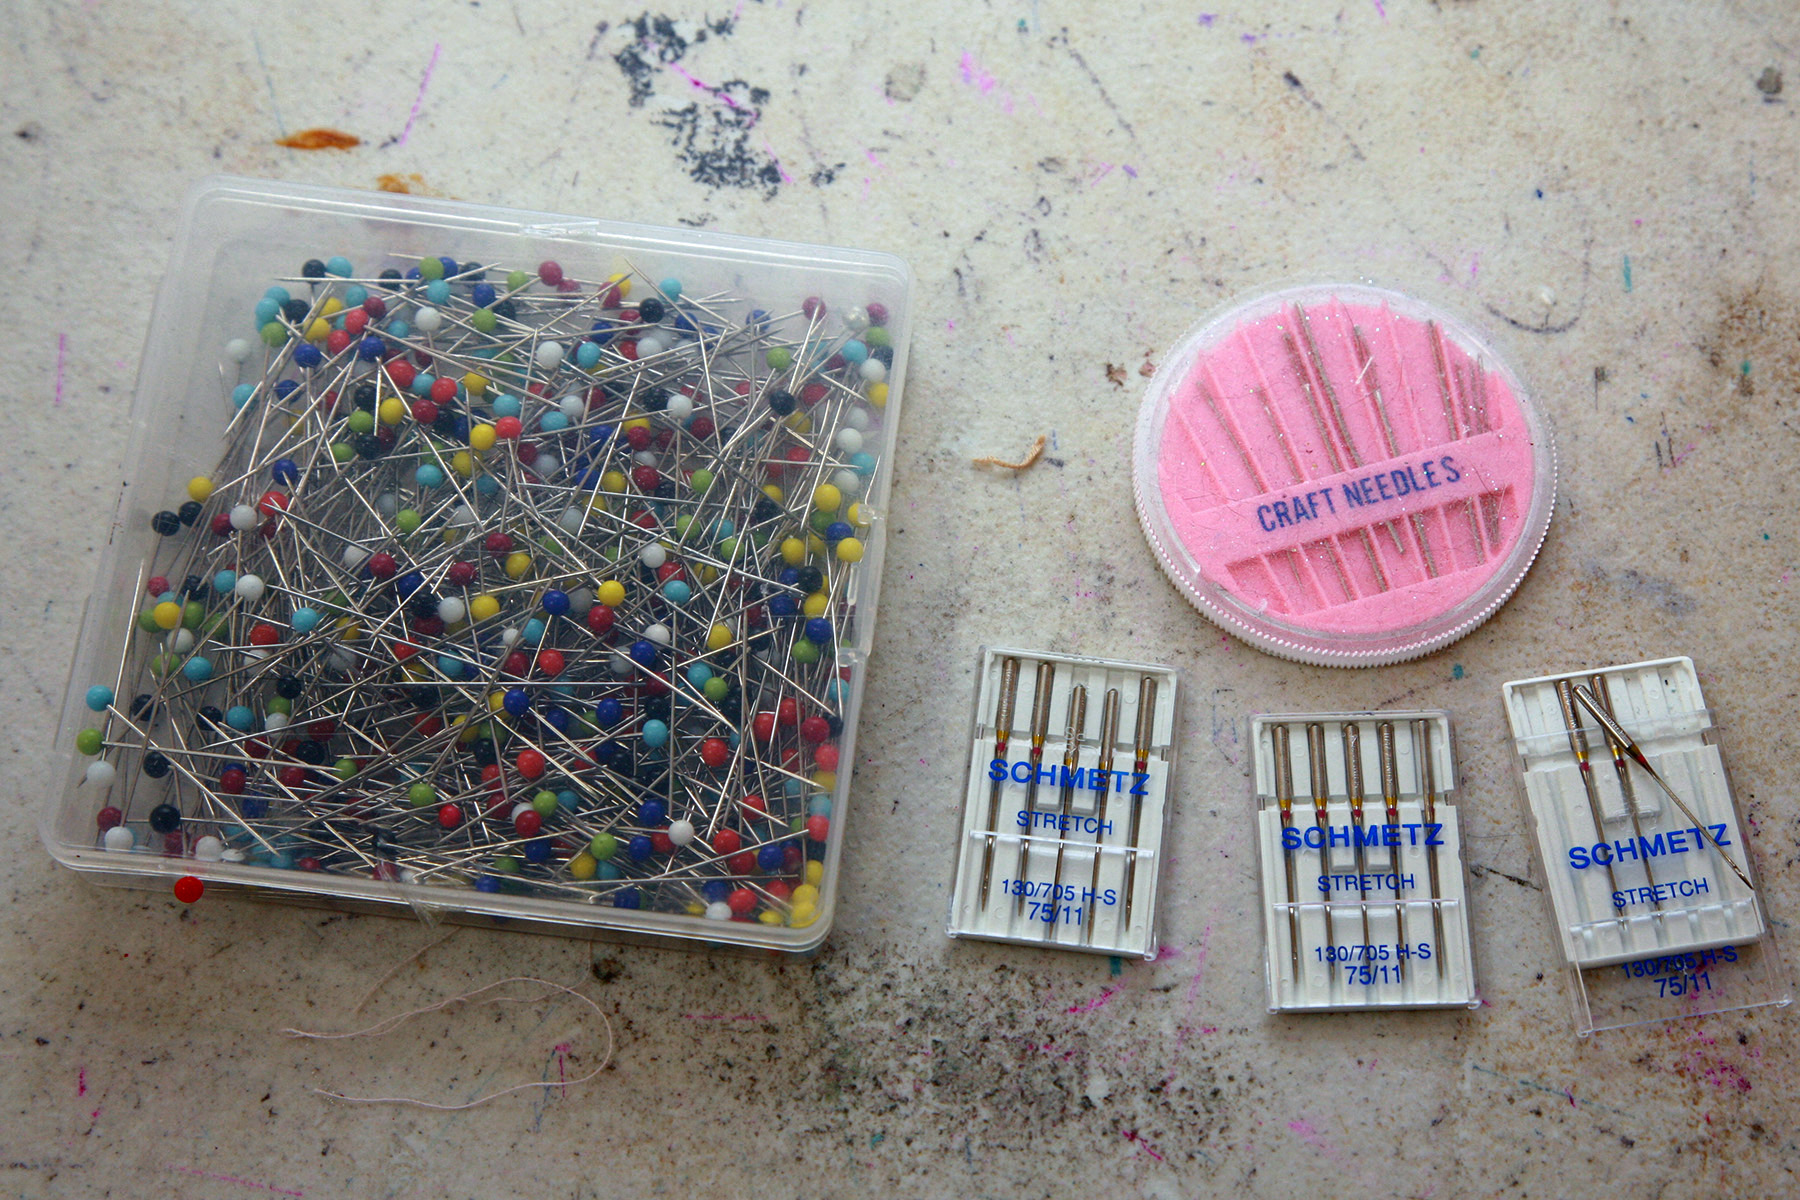 A selection of pins, hand sewing needles, and machine sewing needles.